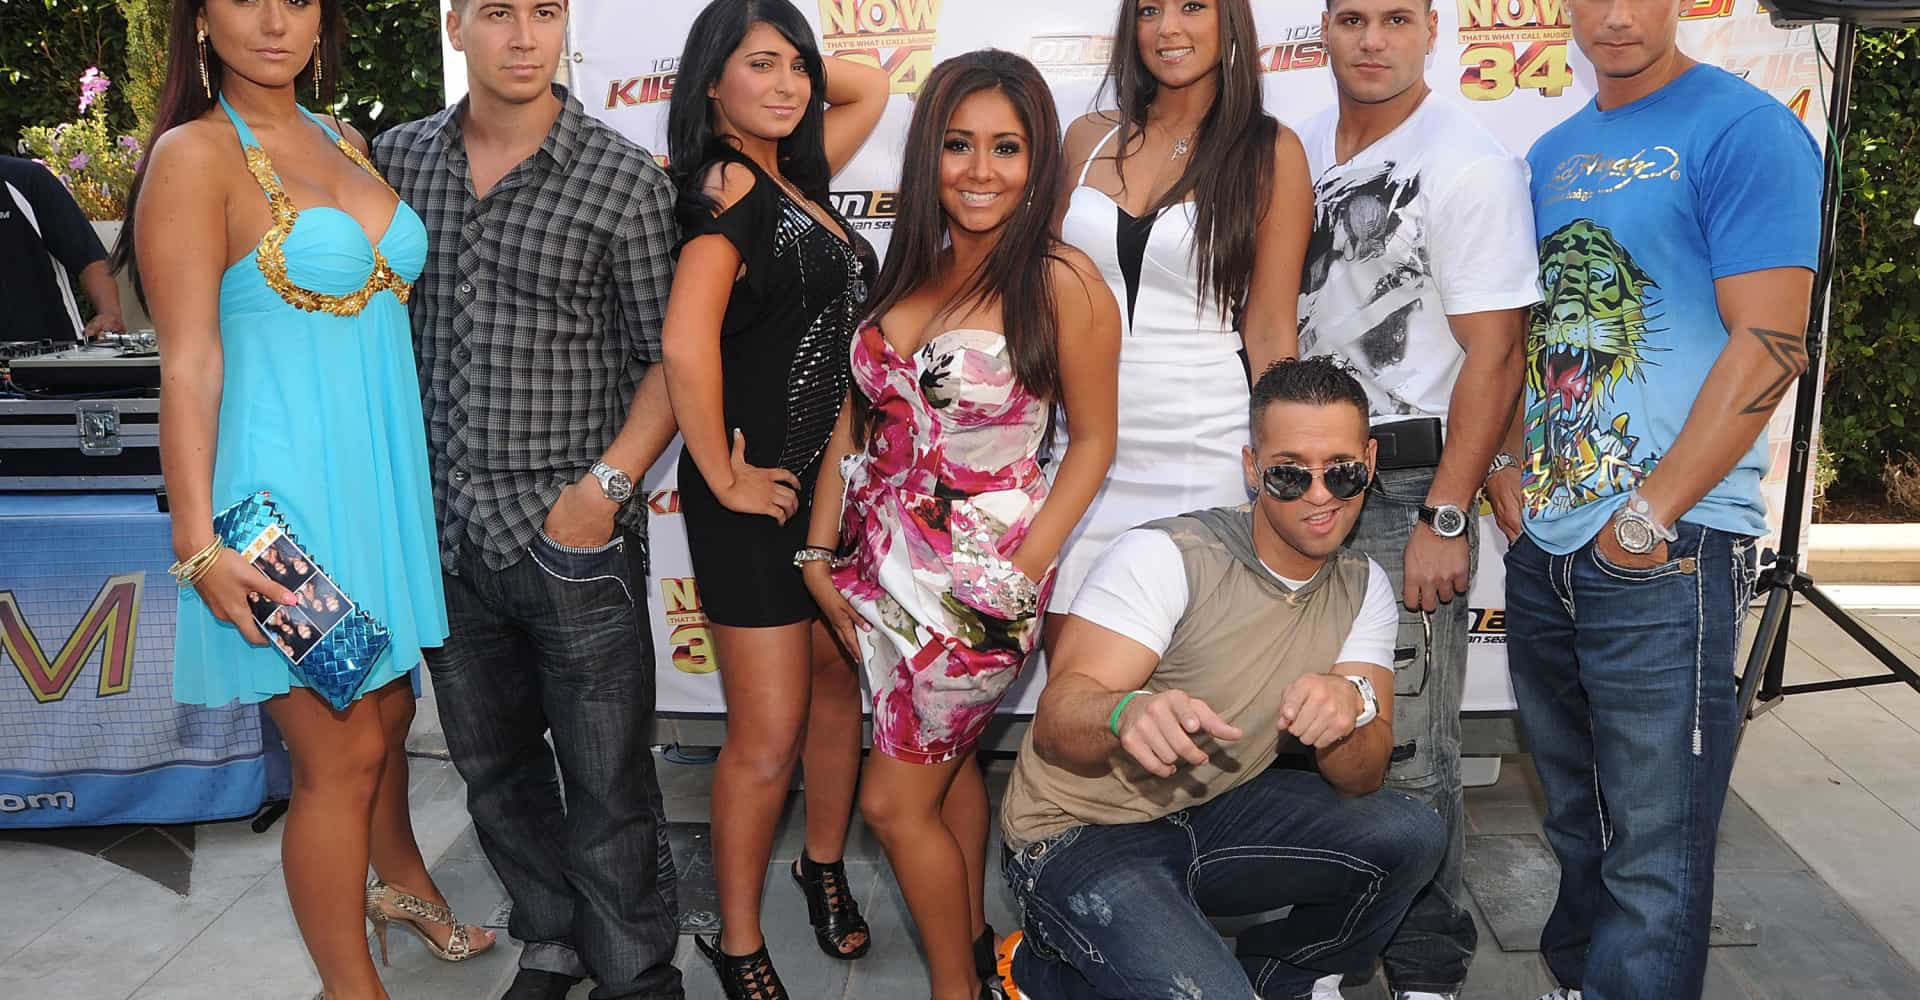 The most controversial moments on  'Jersey Shore'